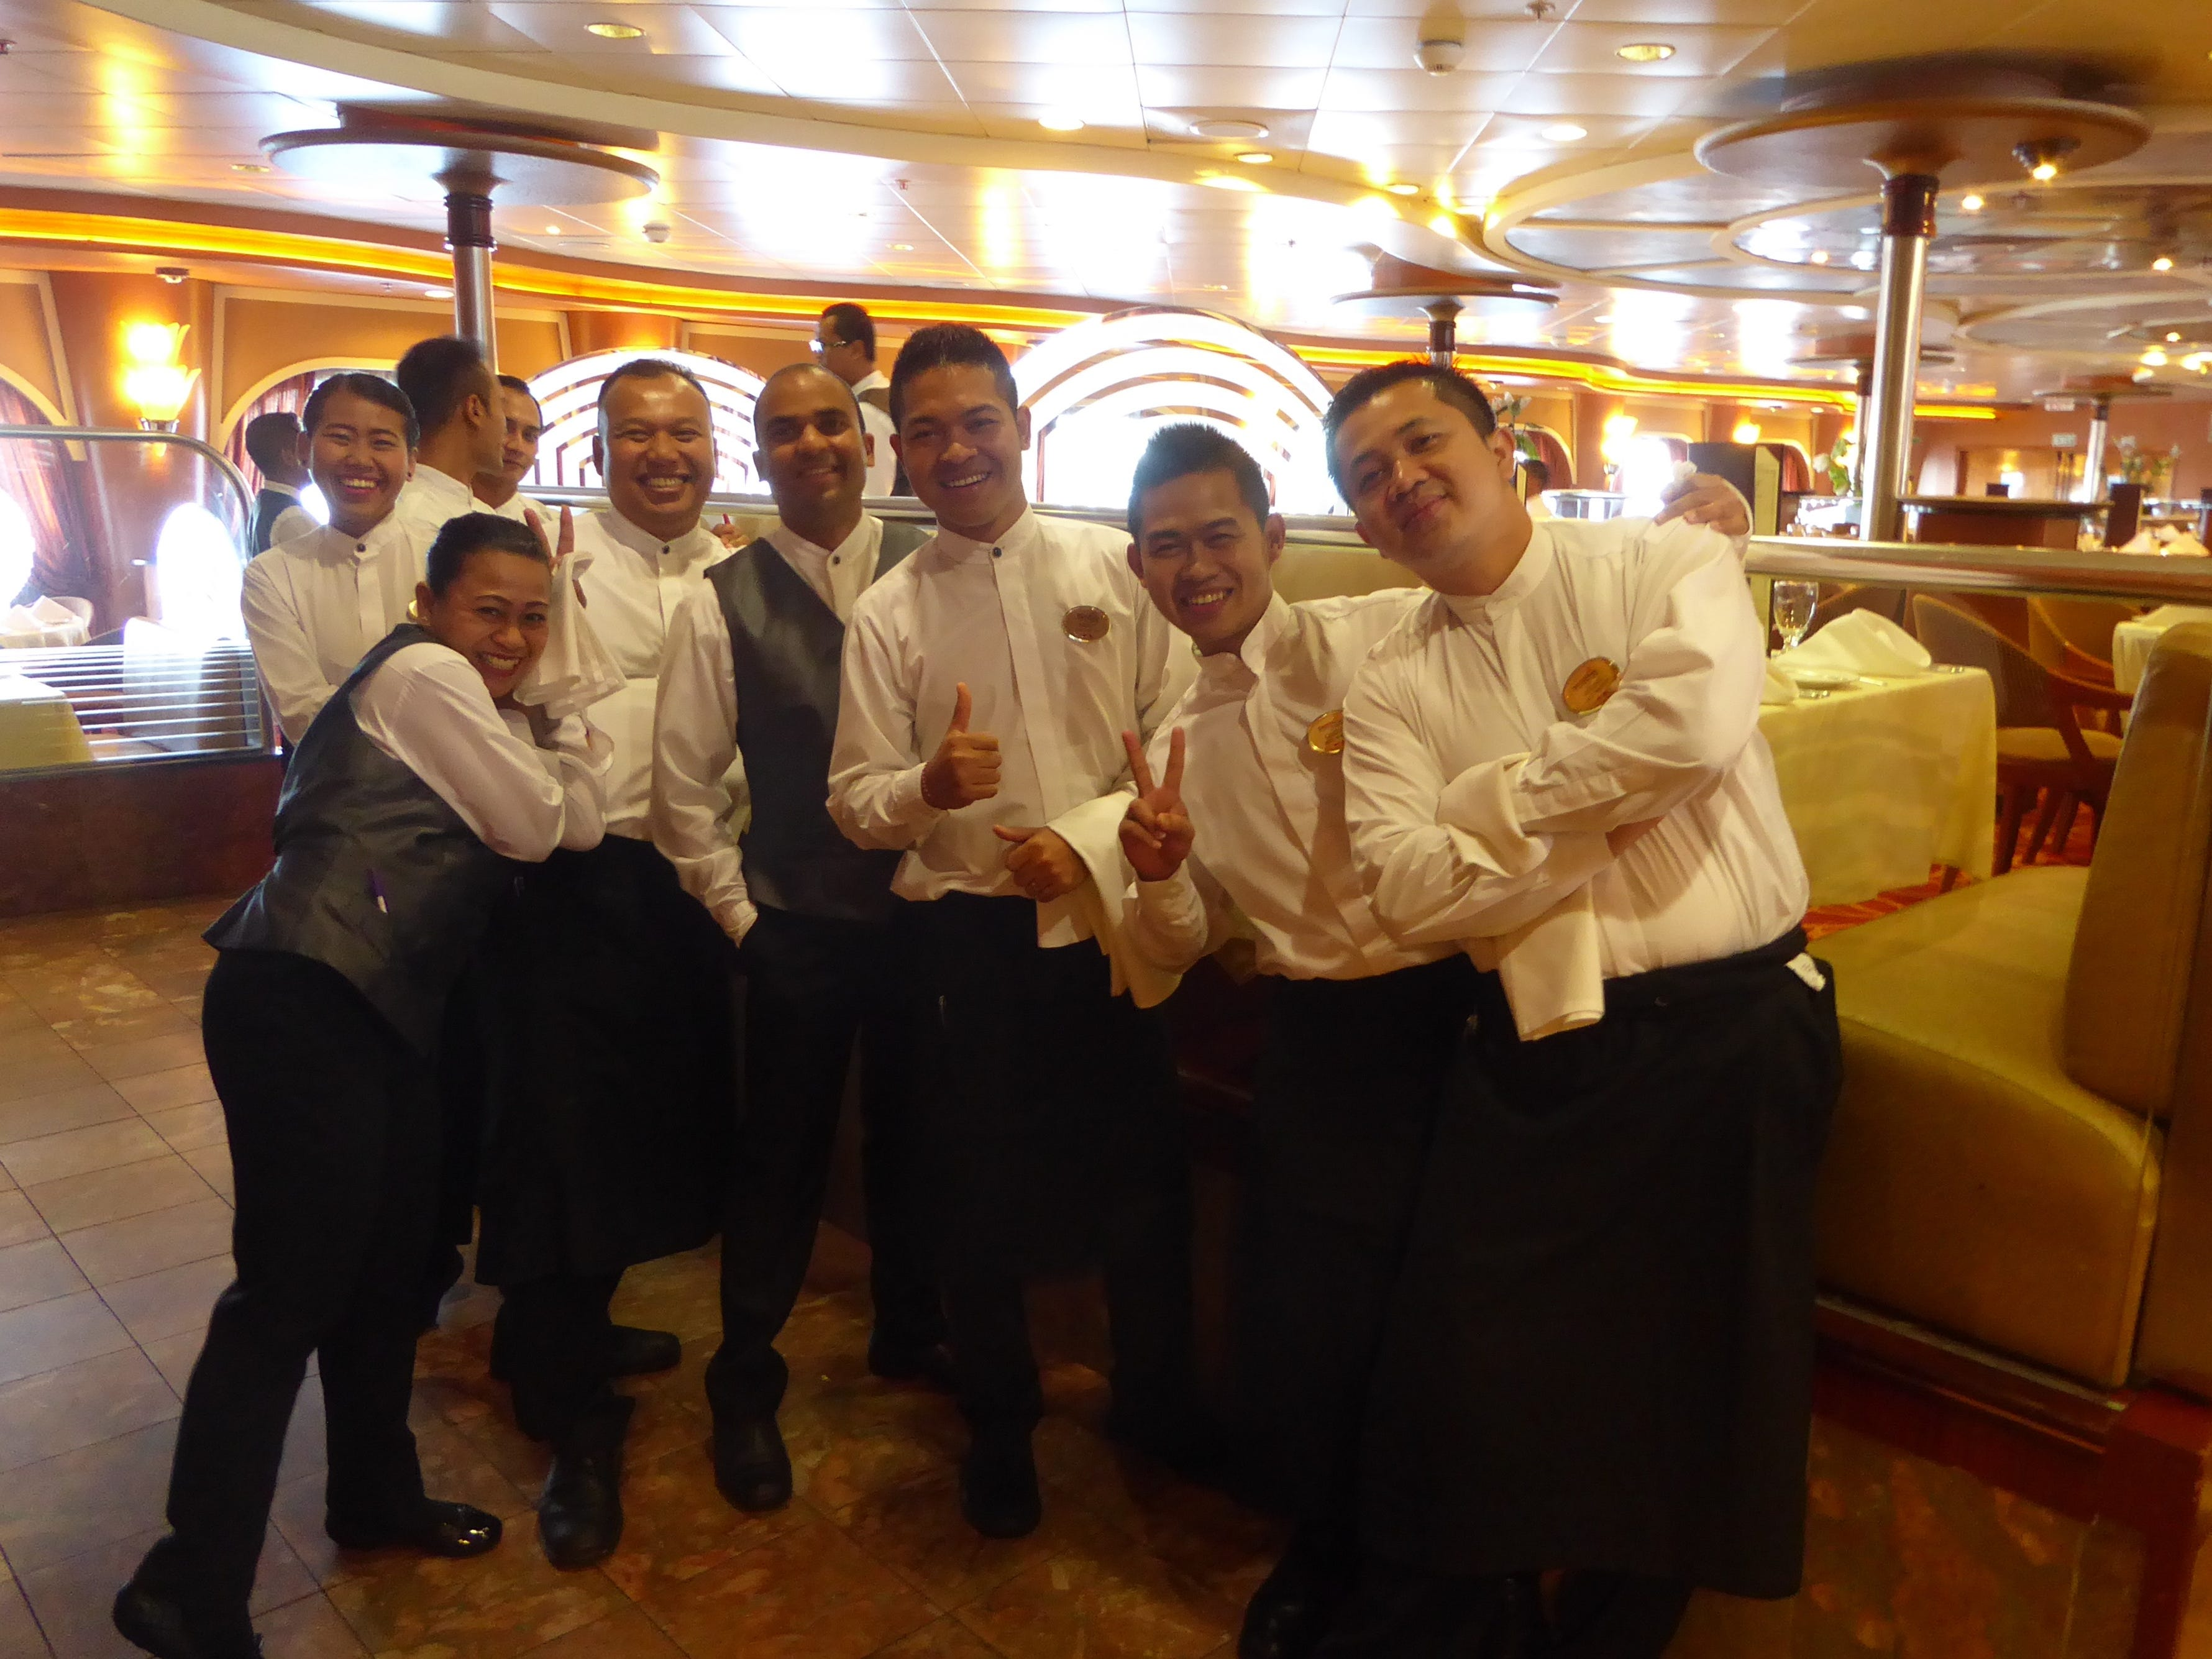 The Grand Celebration began Bahamas cruise service in late 2014. The ship is staffed by a friendly crew numbering 680.